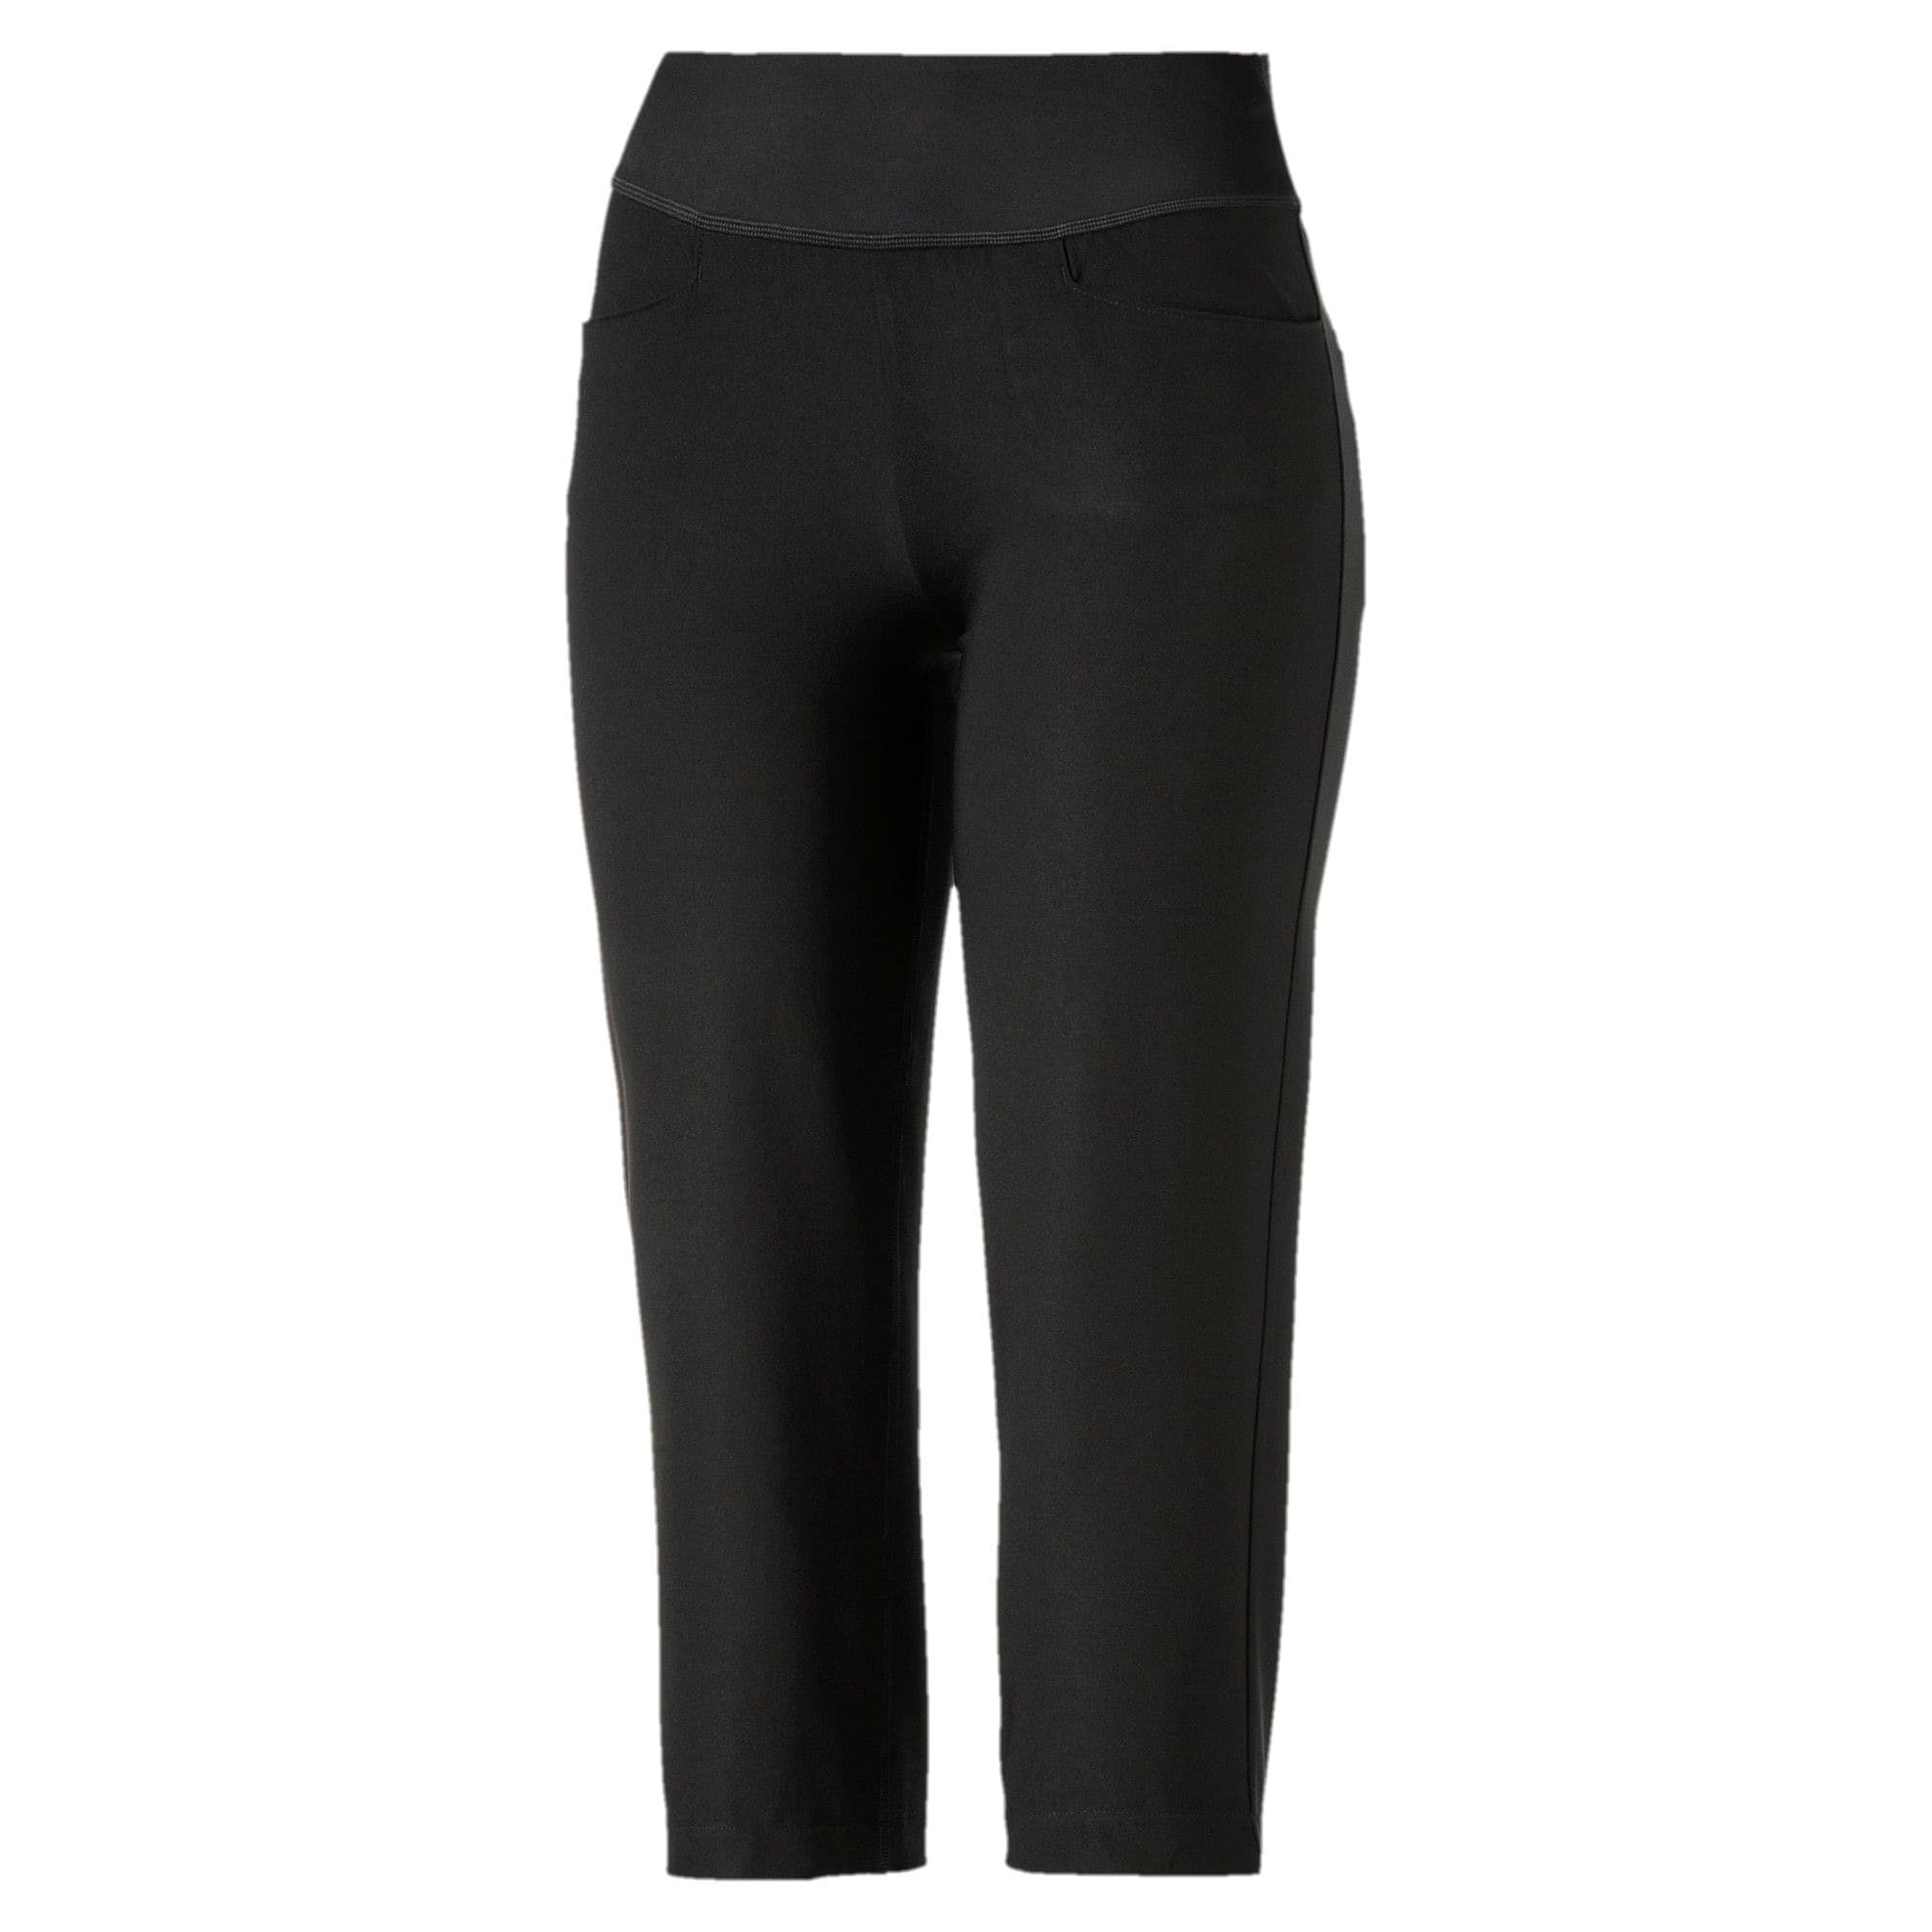 Thumbnail 1 of Golf Damen PWRSHAPE Caprihose, Puma Black, medium